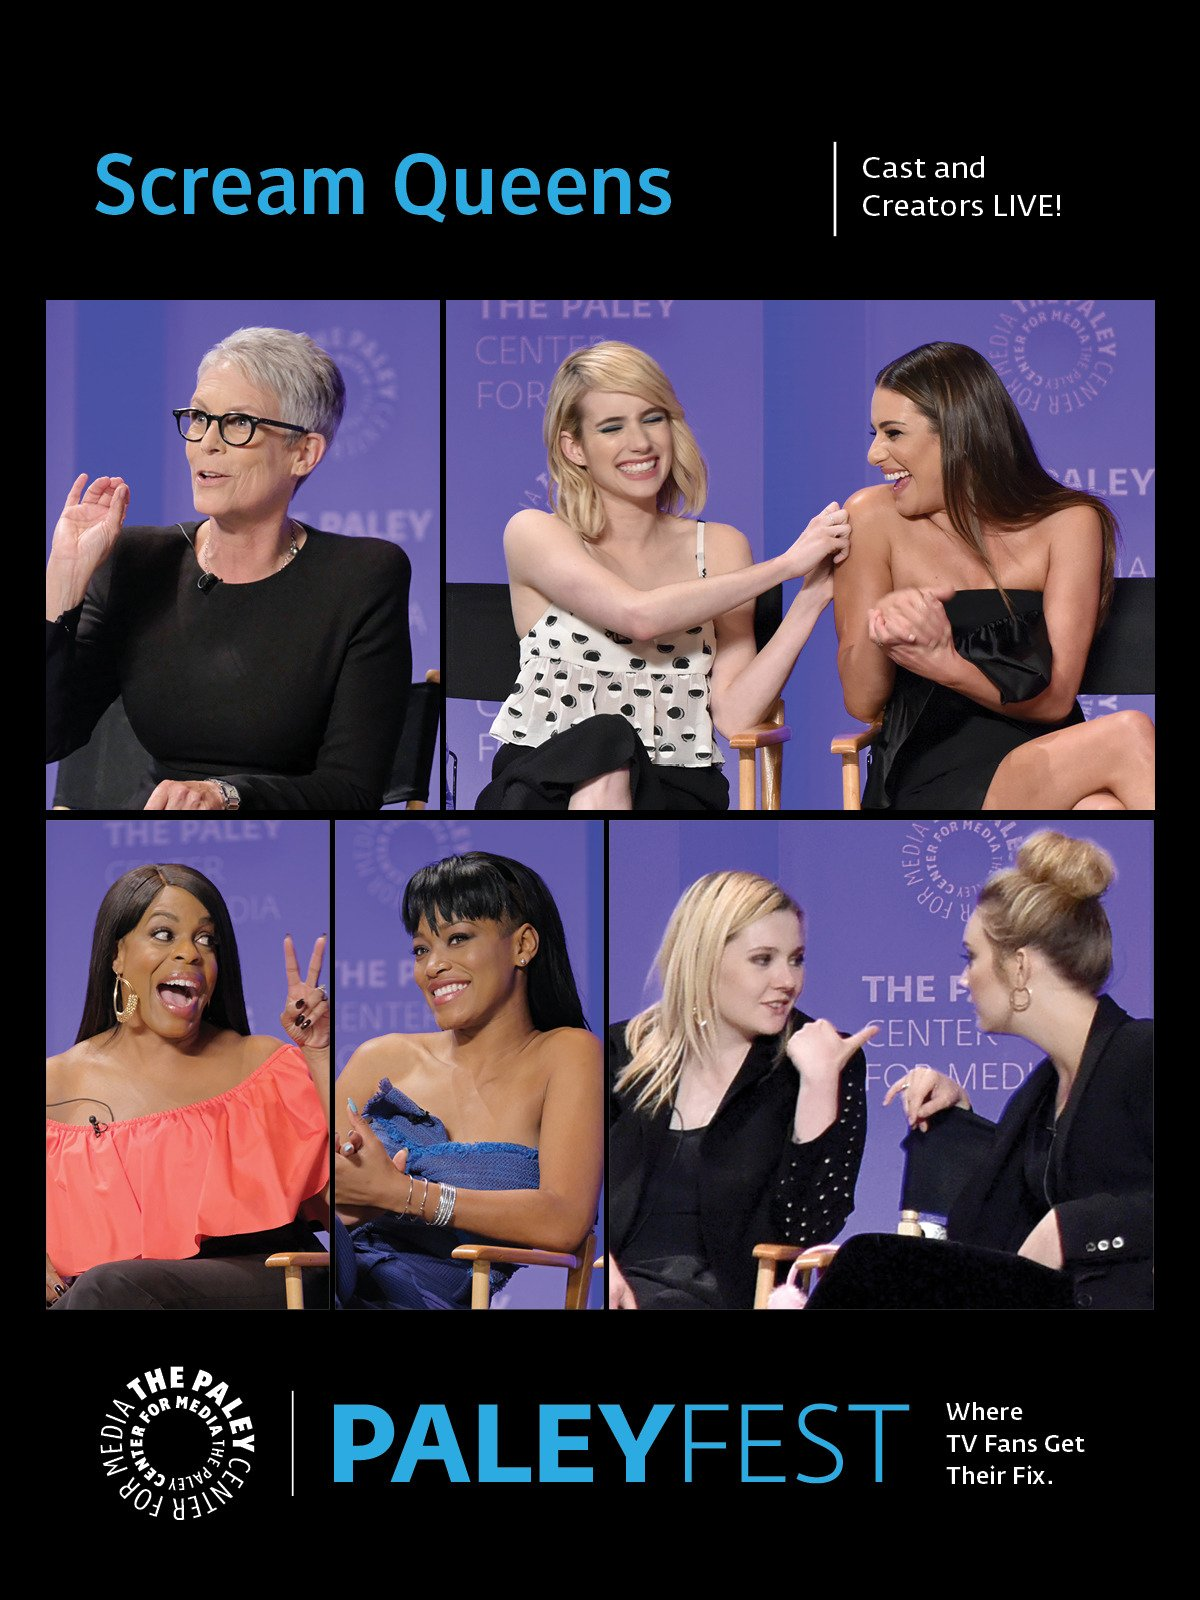 Scream Queens: Cast and Creators PaleyFest